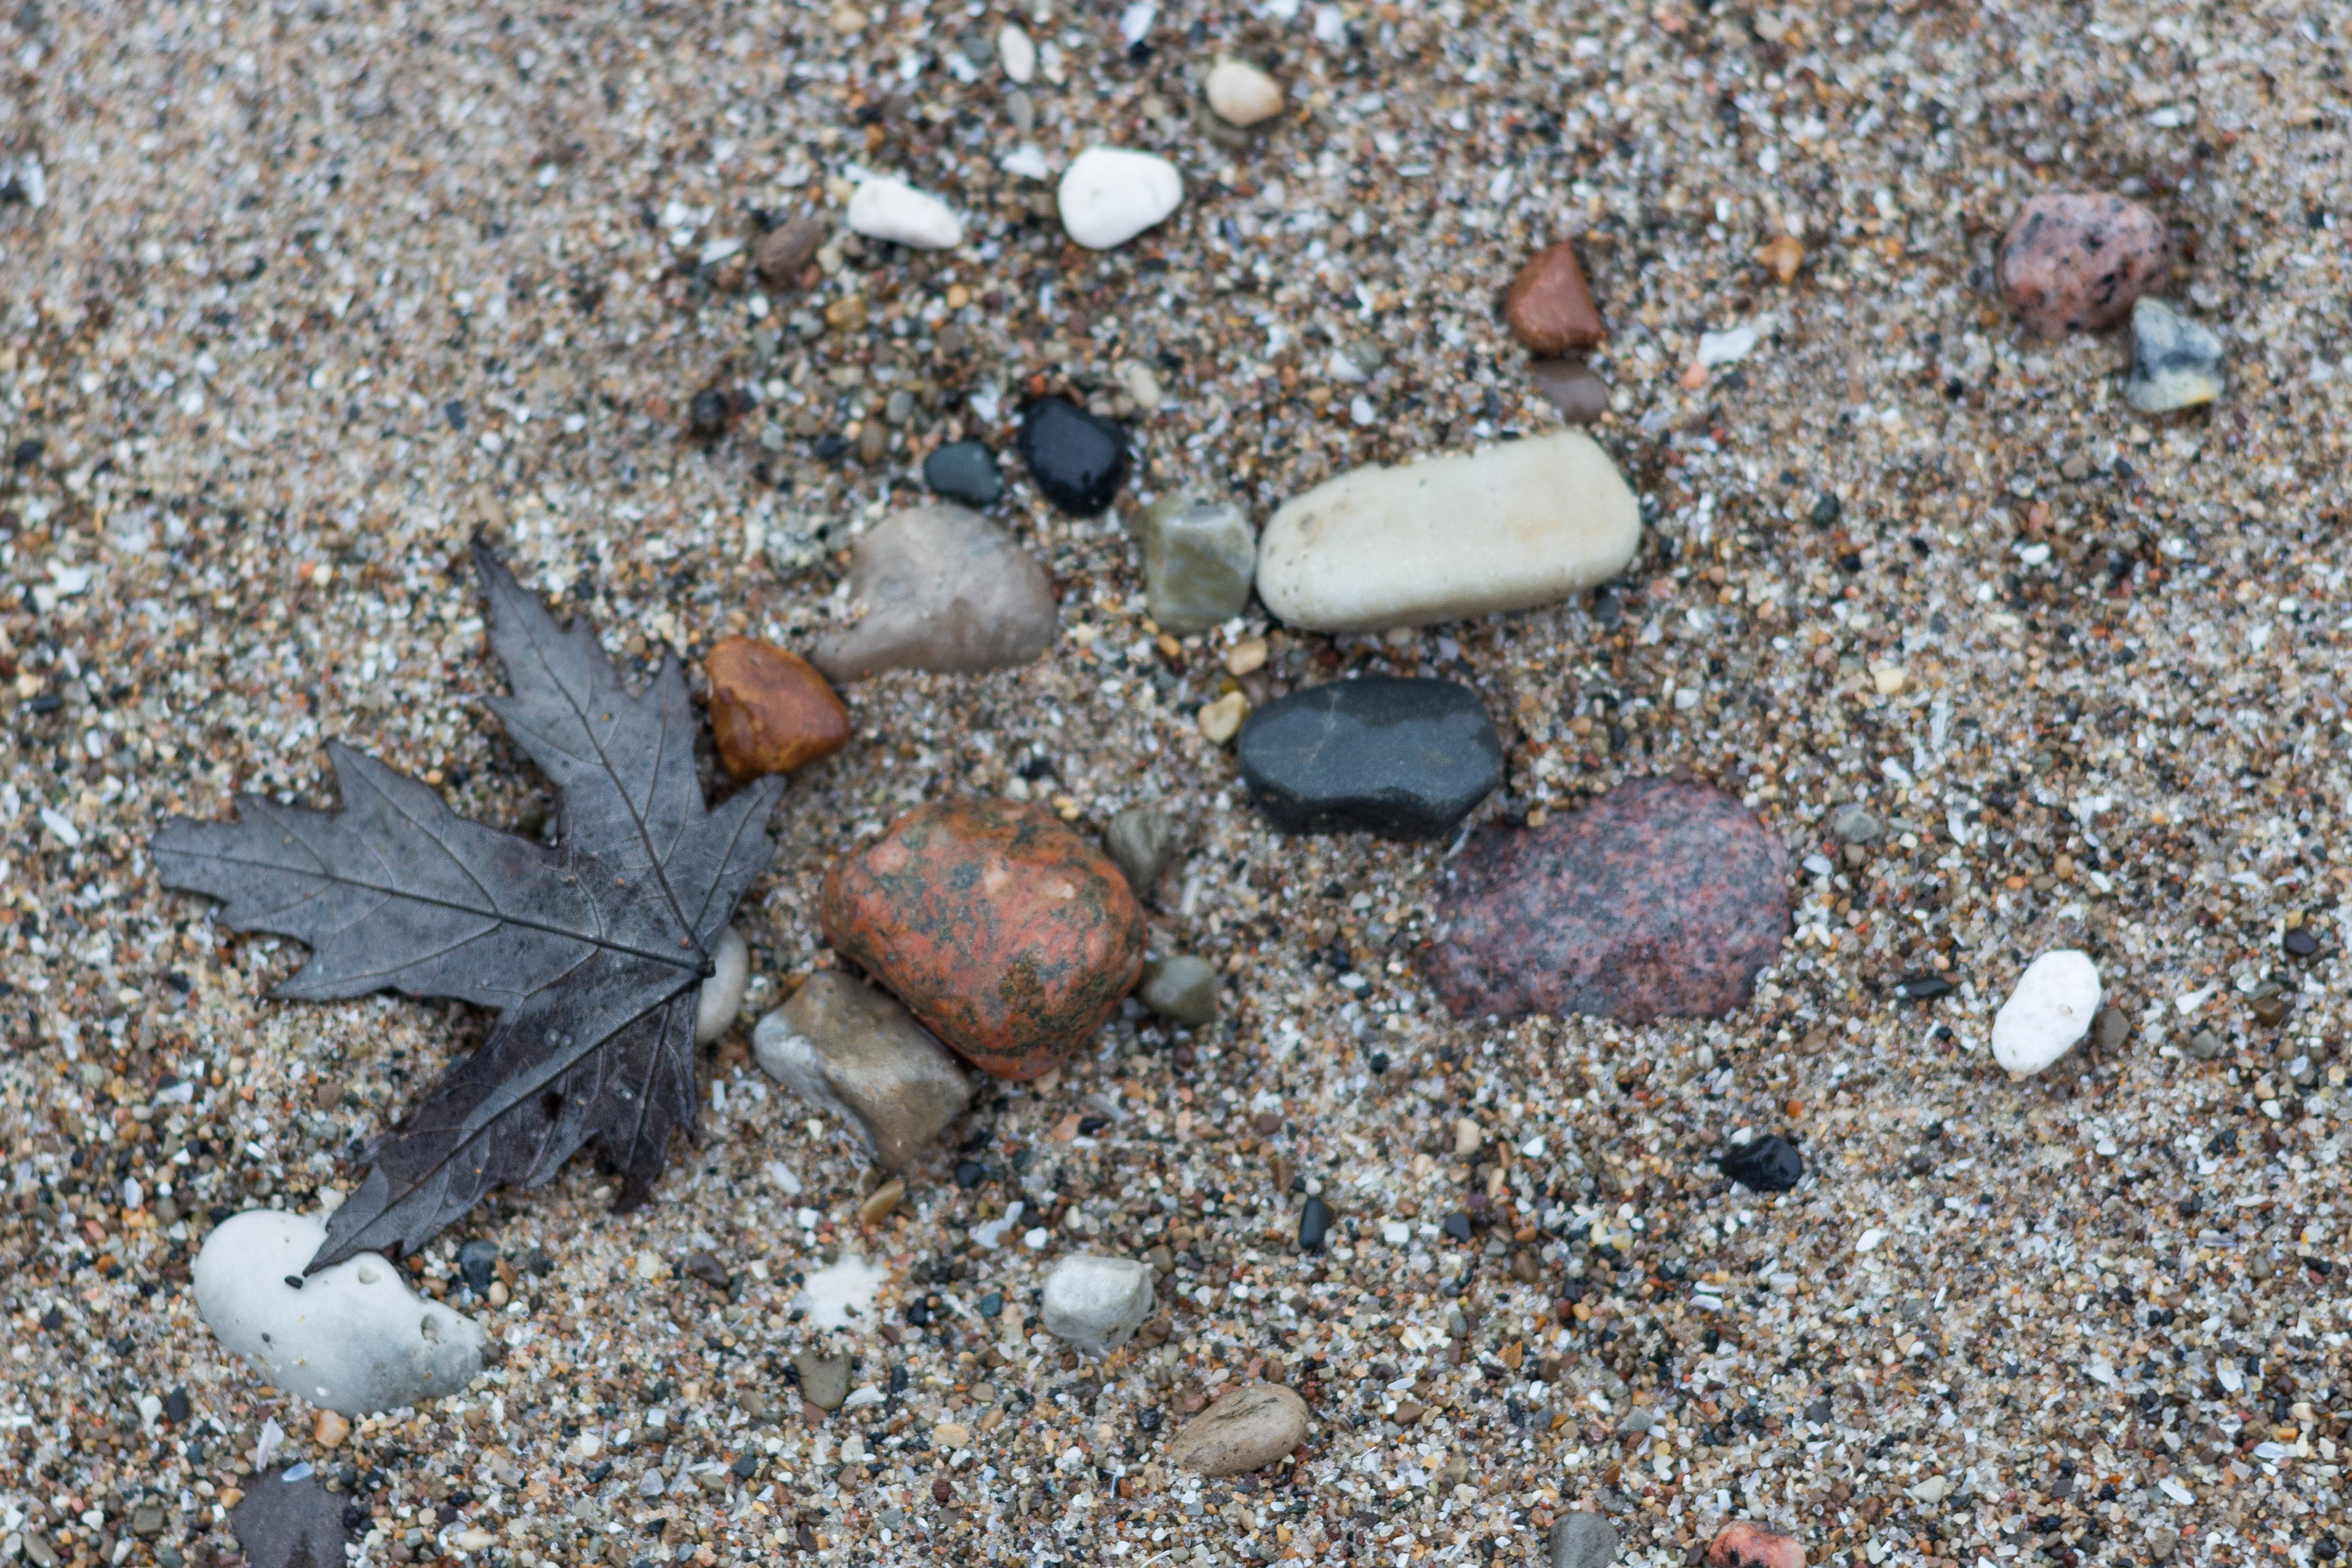 Rocks and a Leaf on the Beach | https://www.roseclearfield.com